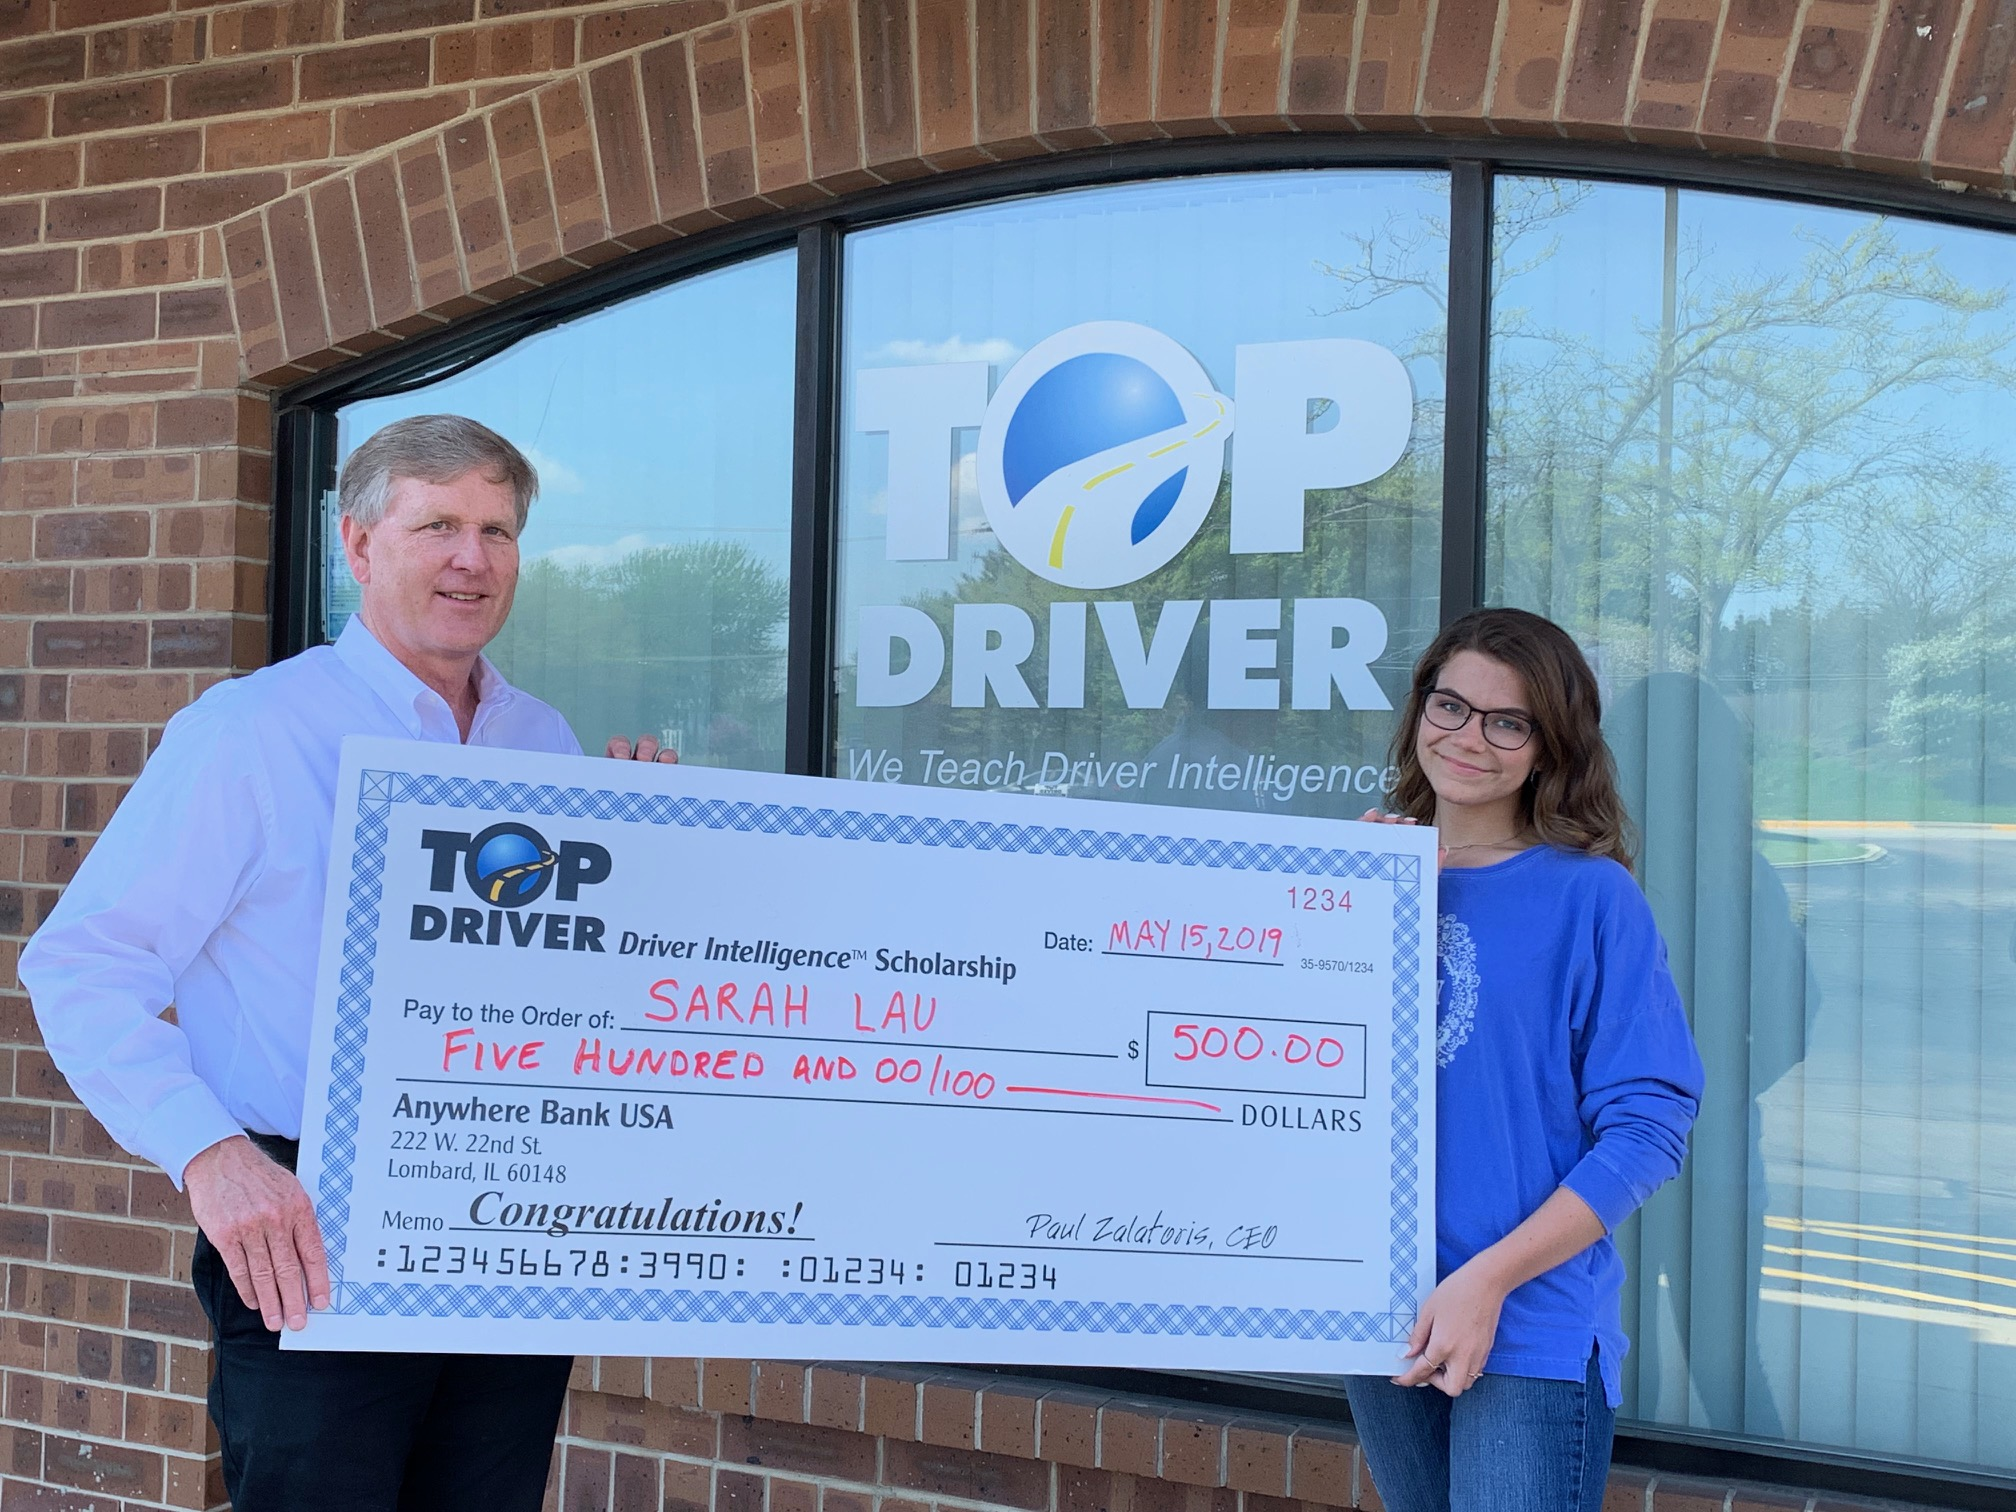 Sarah Lau $500 check from Top Driver